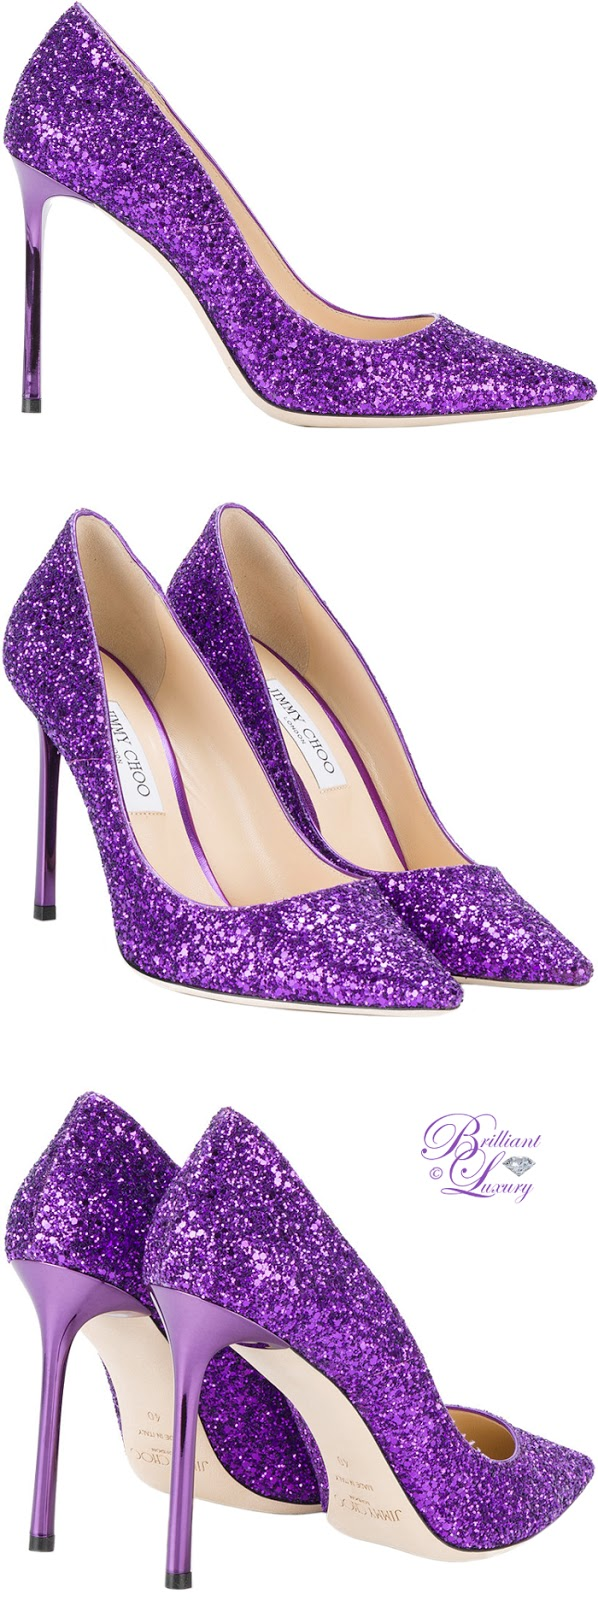 Brilliant Luxury ♦ Jimmy Choo Romy Pumps